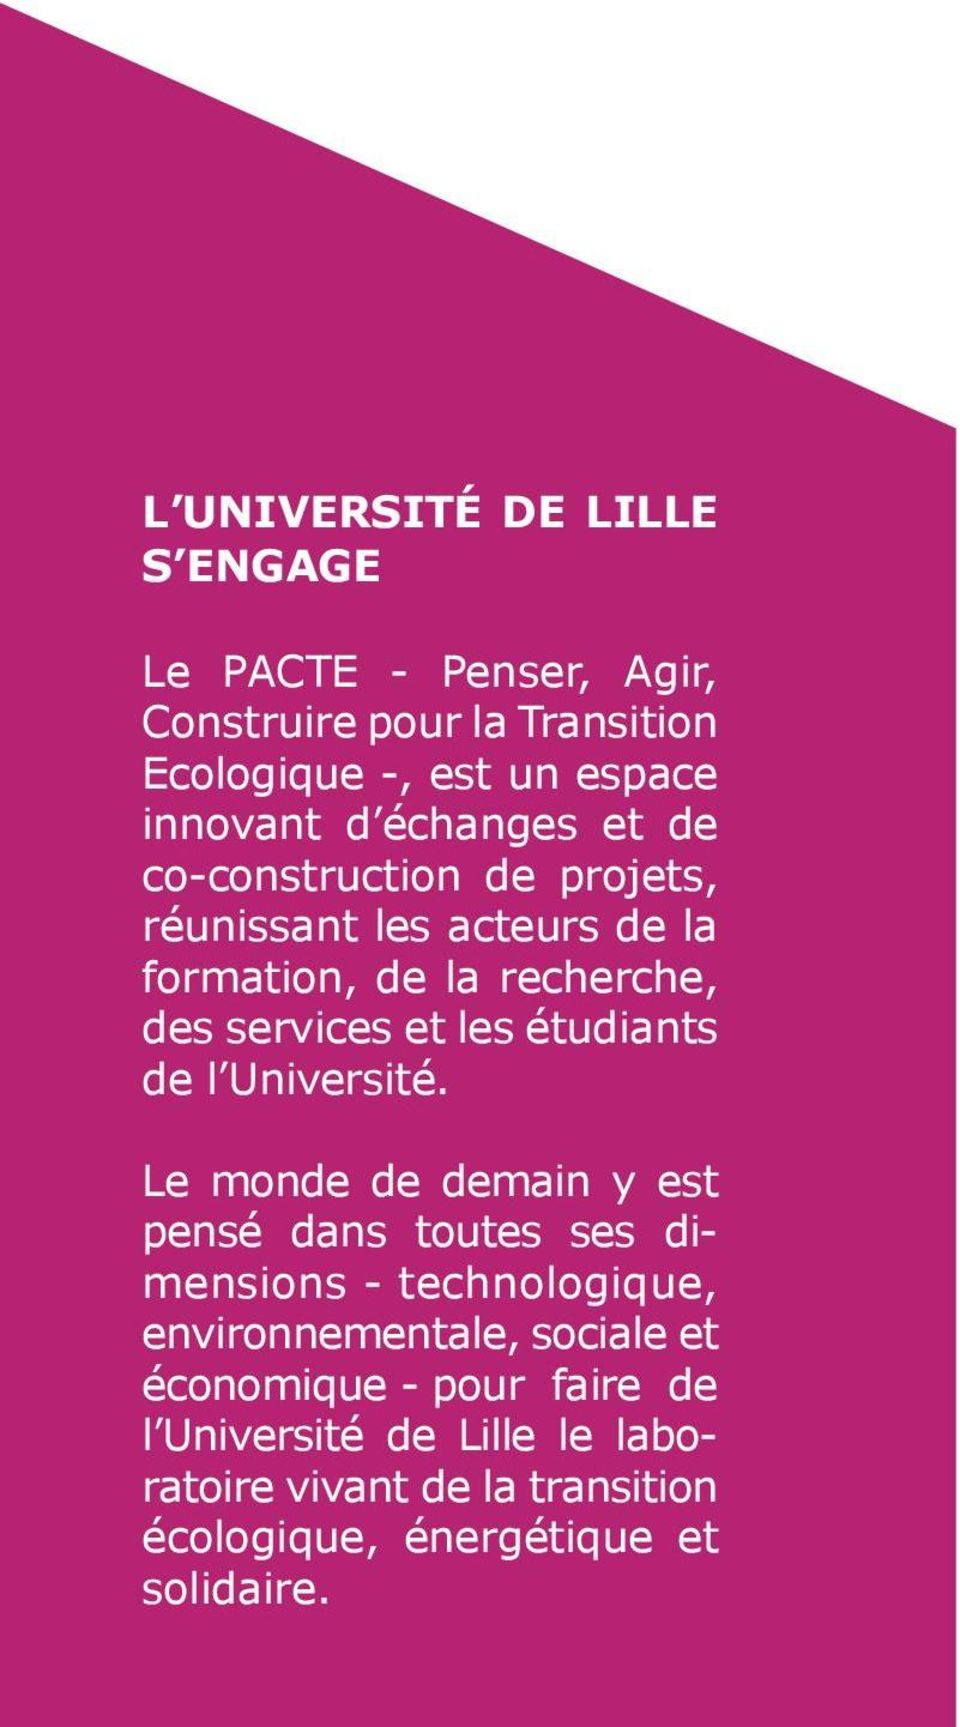 étudiants de l Université.